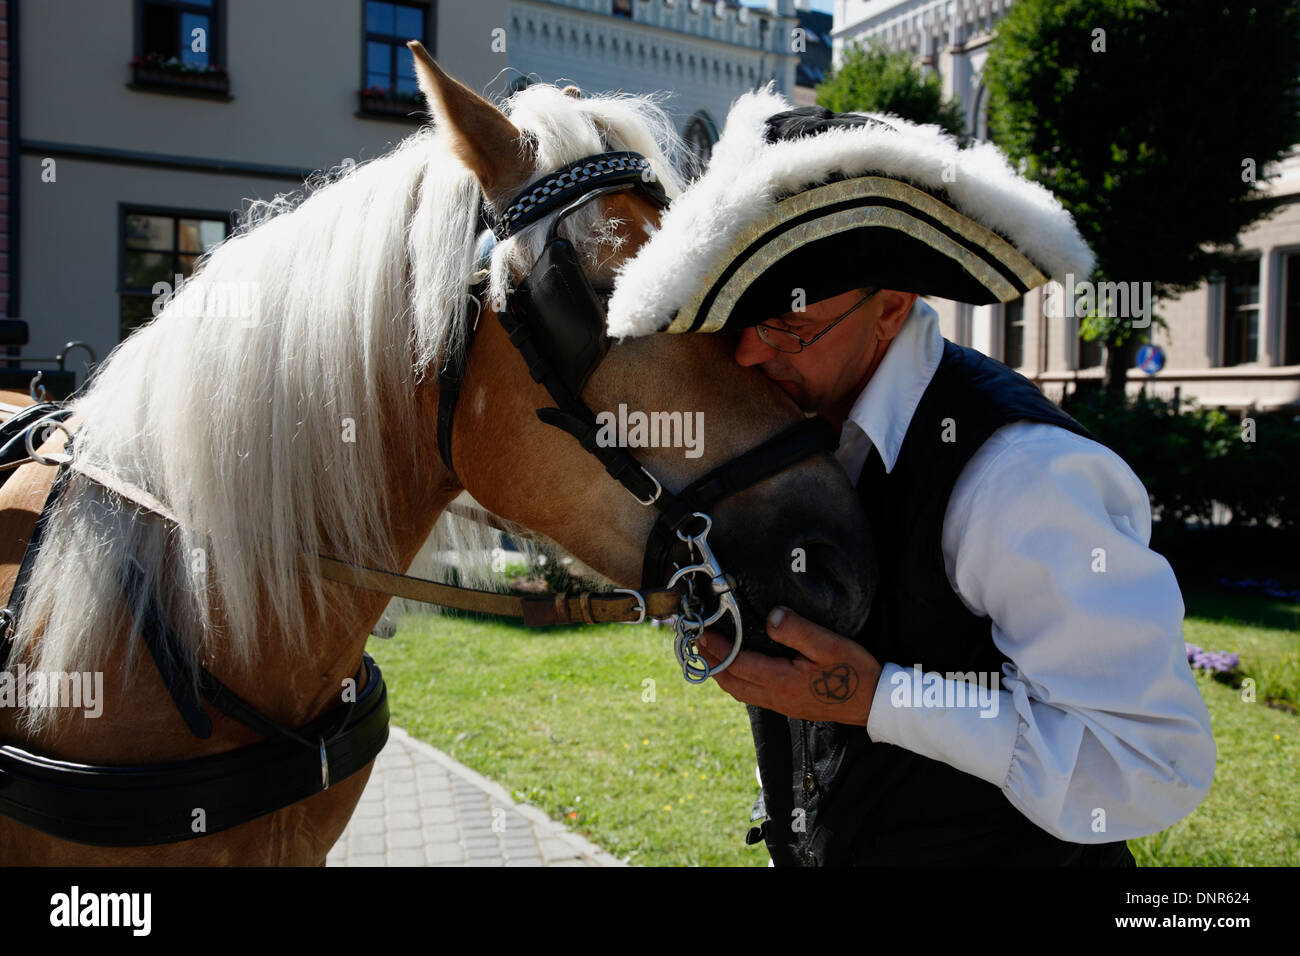 Coachman and his carriage Horse , old town, Riga, Latvia, Europe - Stock Image